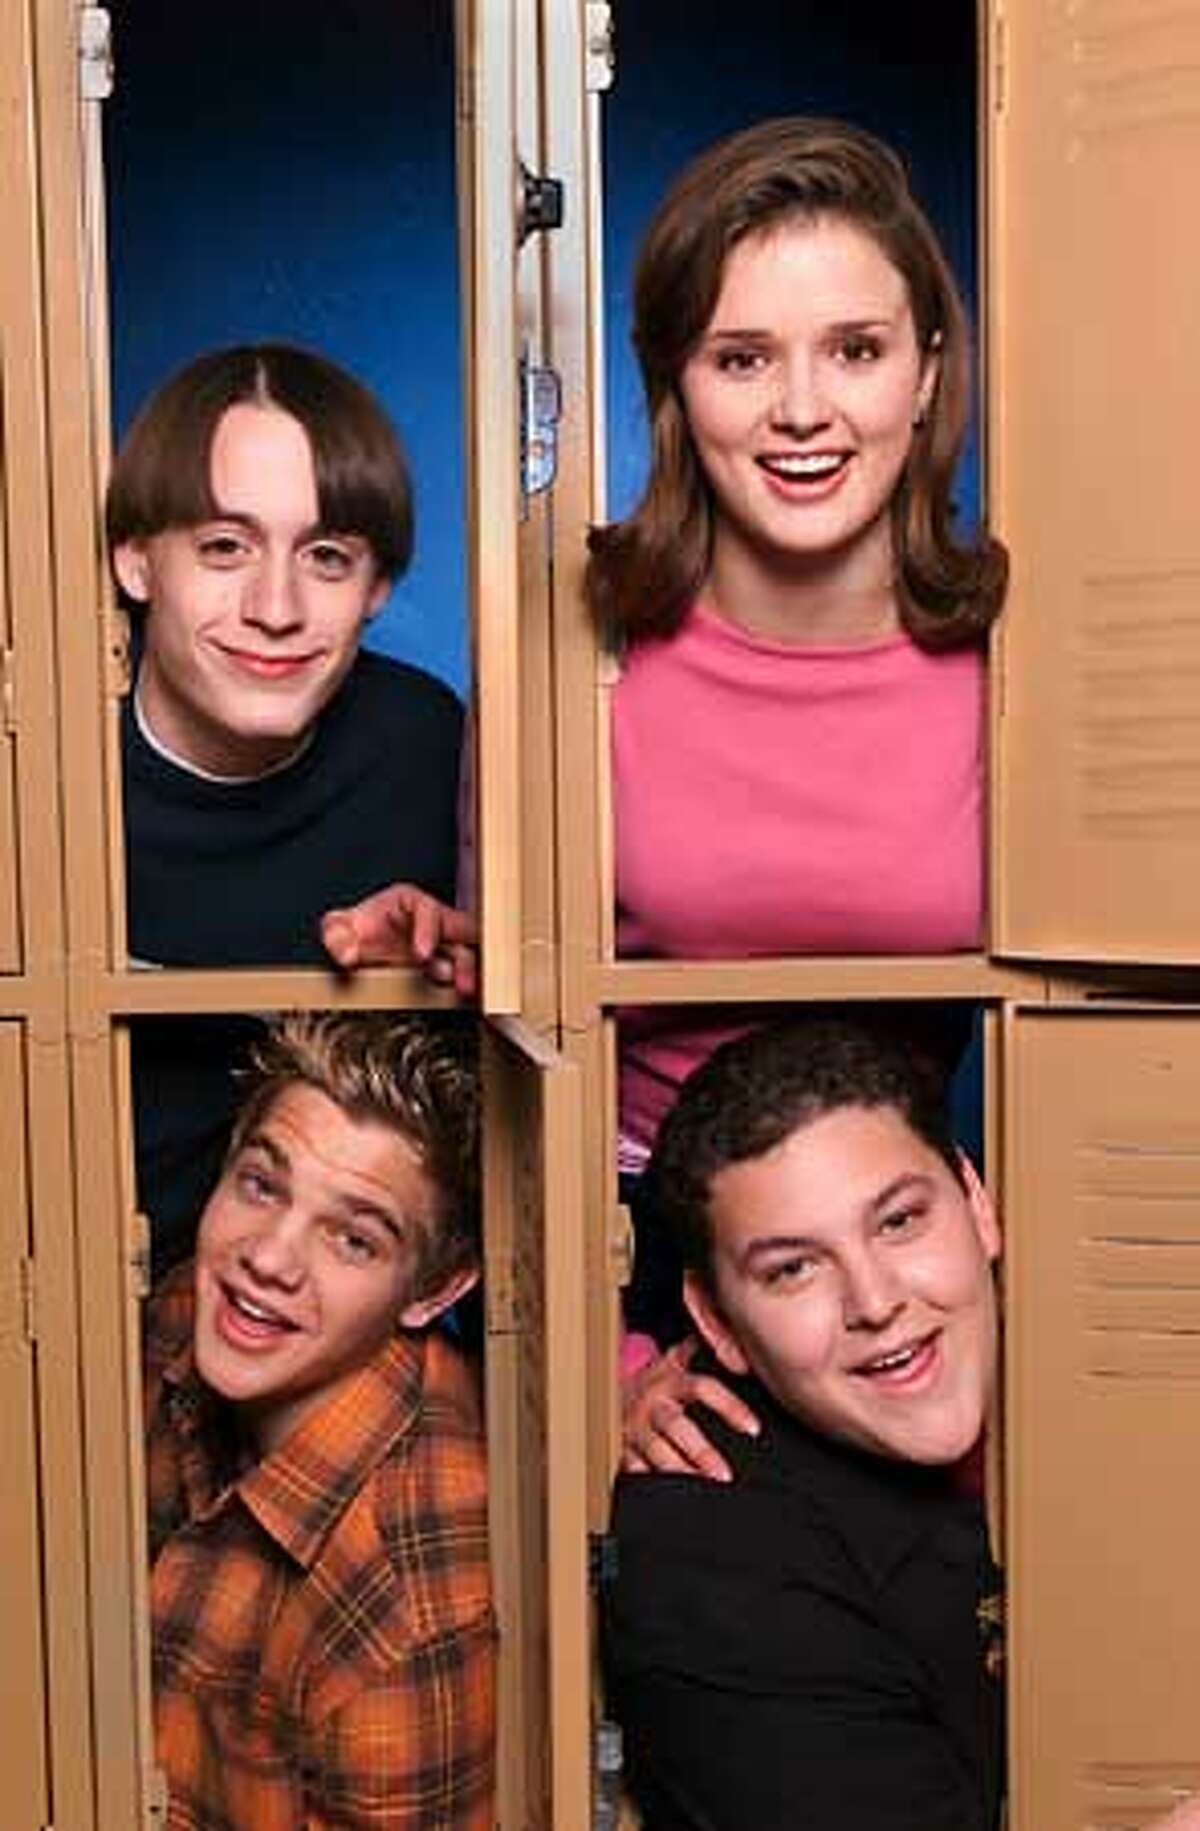 GO FISH -- NBC Series -- Pictured (clockwise, from top left): Kieran Culkin as Andy